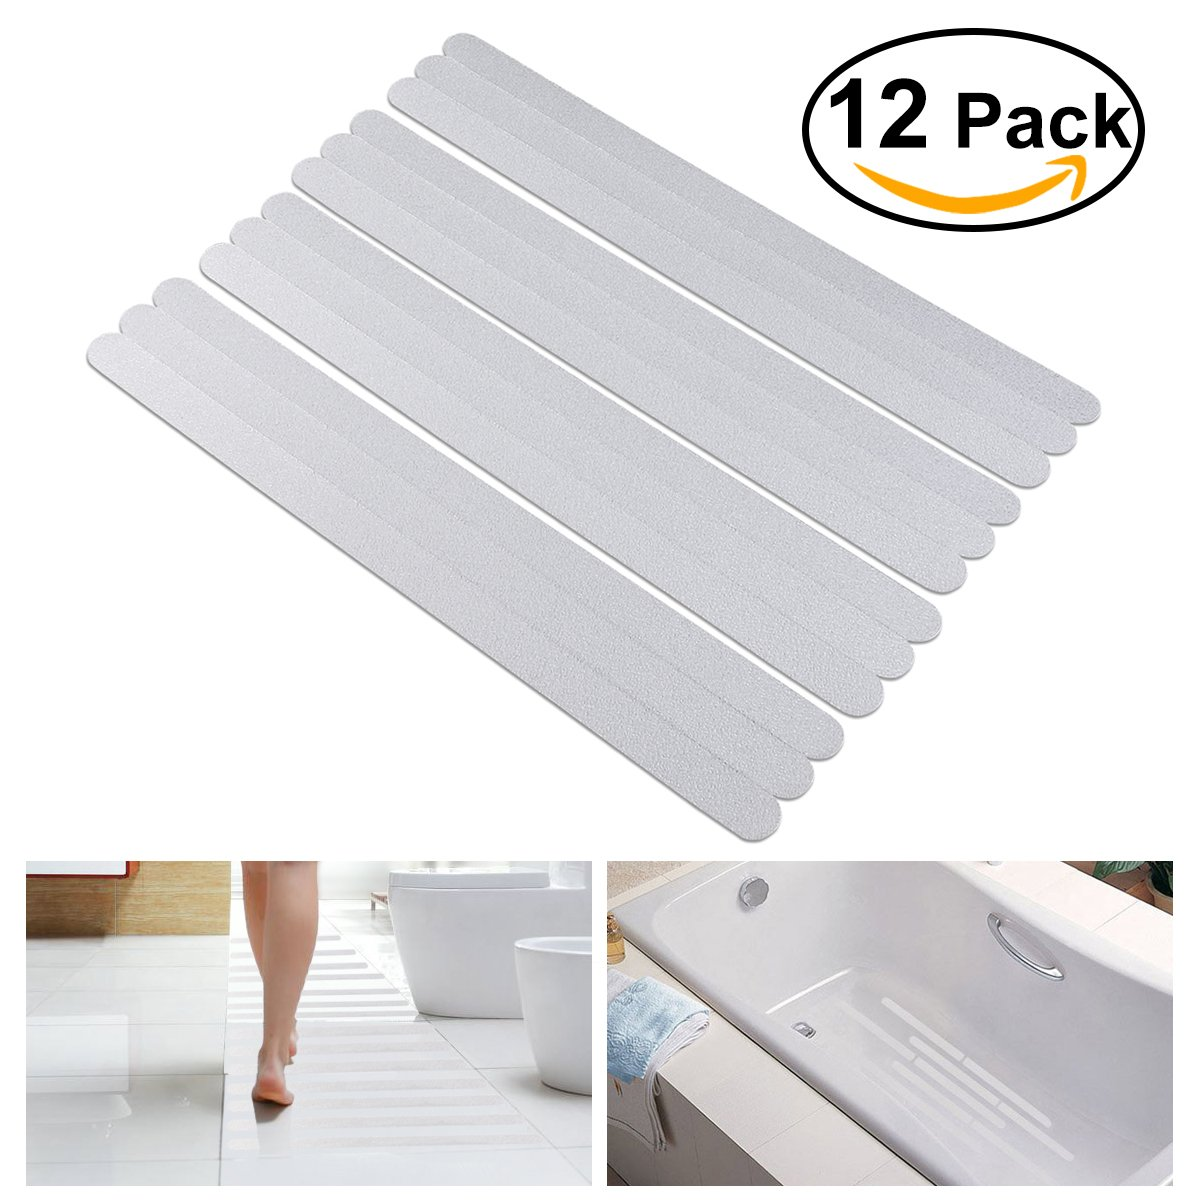 non anti slip resistant shower bath tub bathtub stickers shower treads adhesive 190657144797 ebay. Black Bedroom Furniture Sets. Home Design Ideas